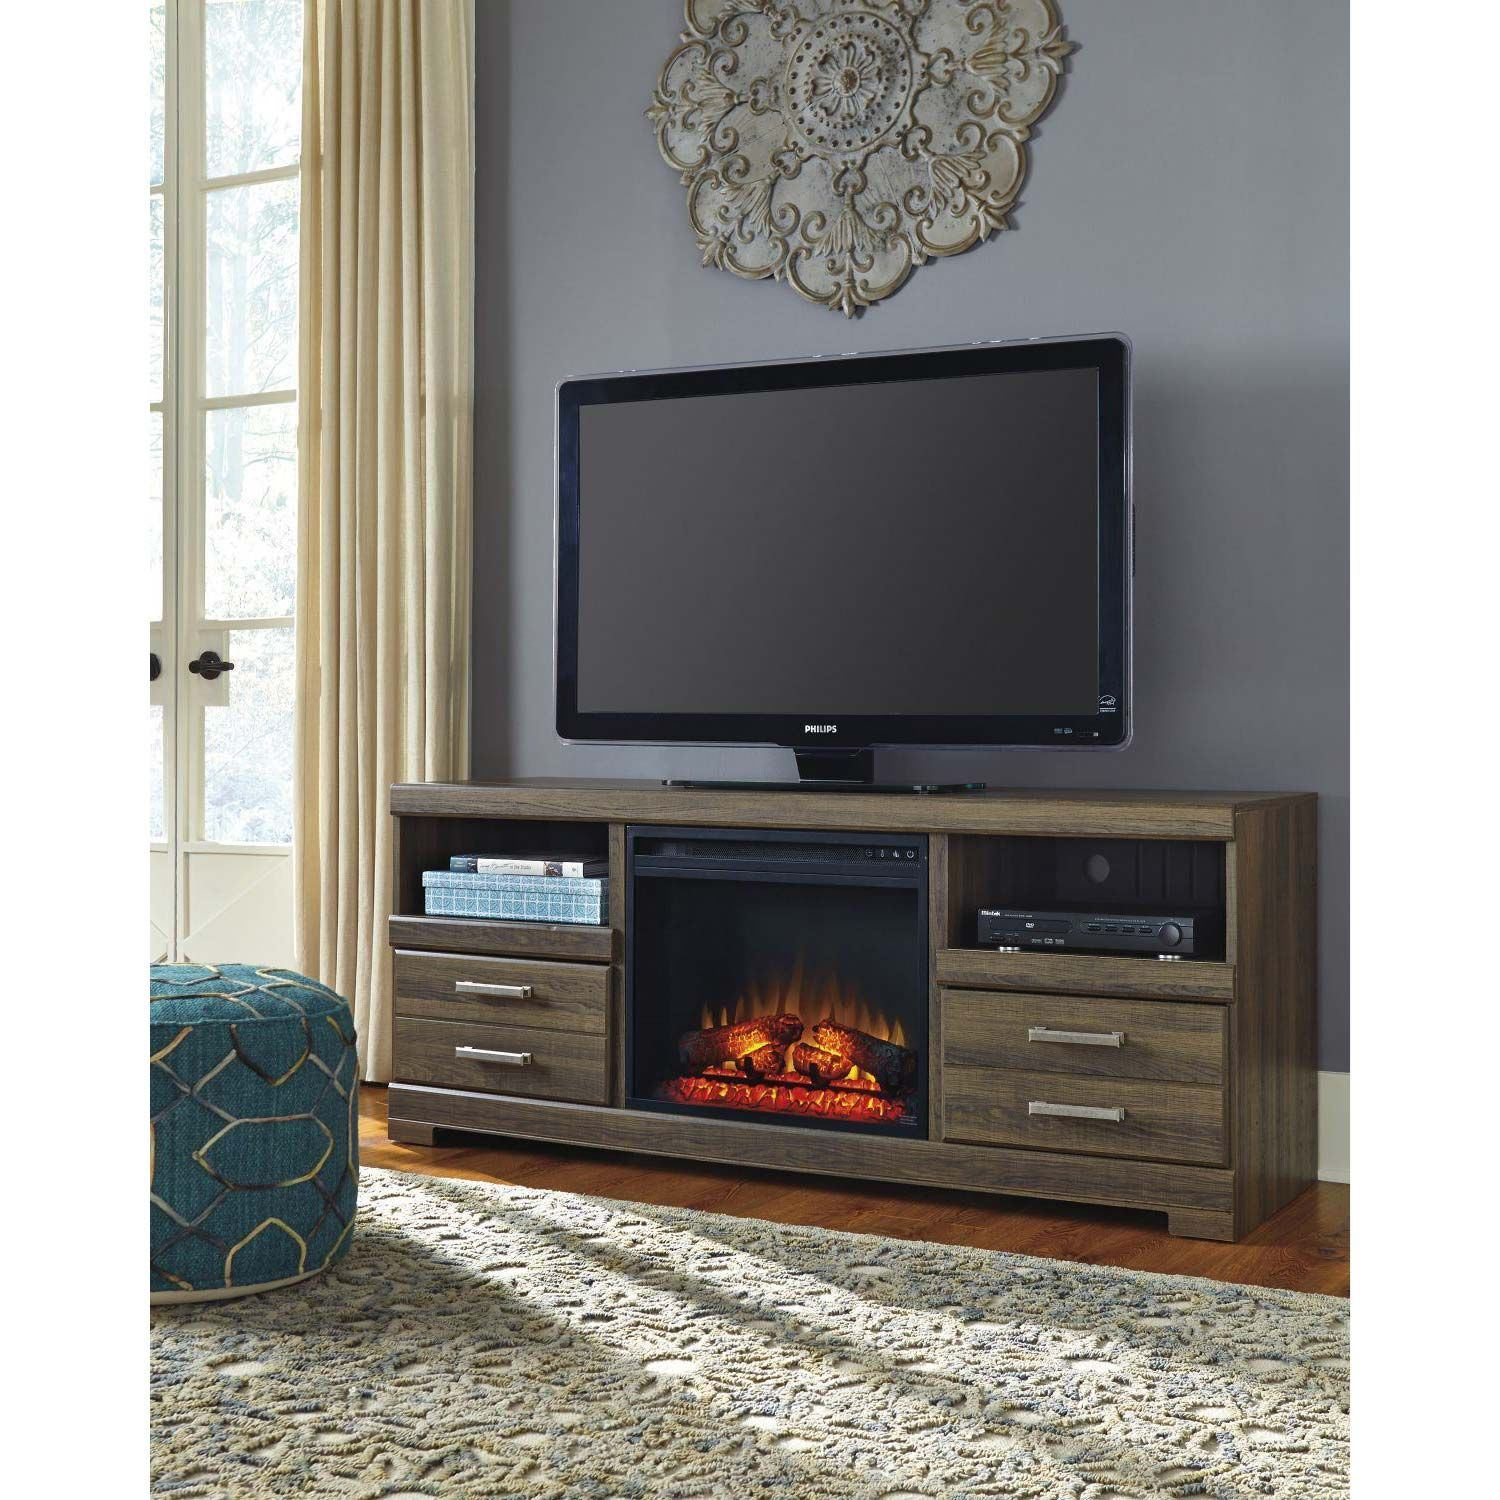 Picture of Frantin Fireplace TV Stand